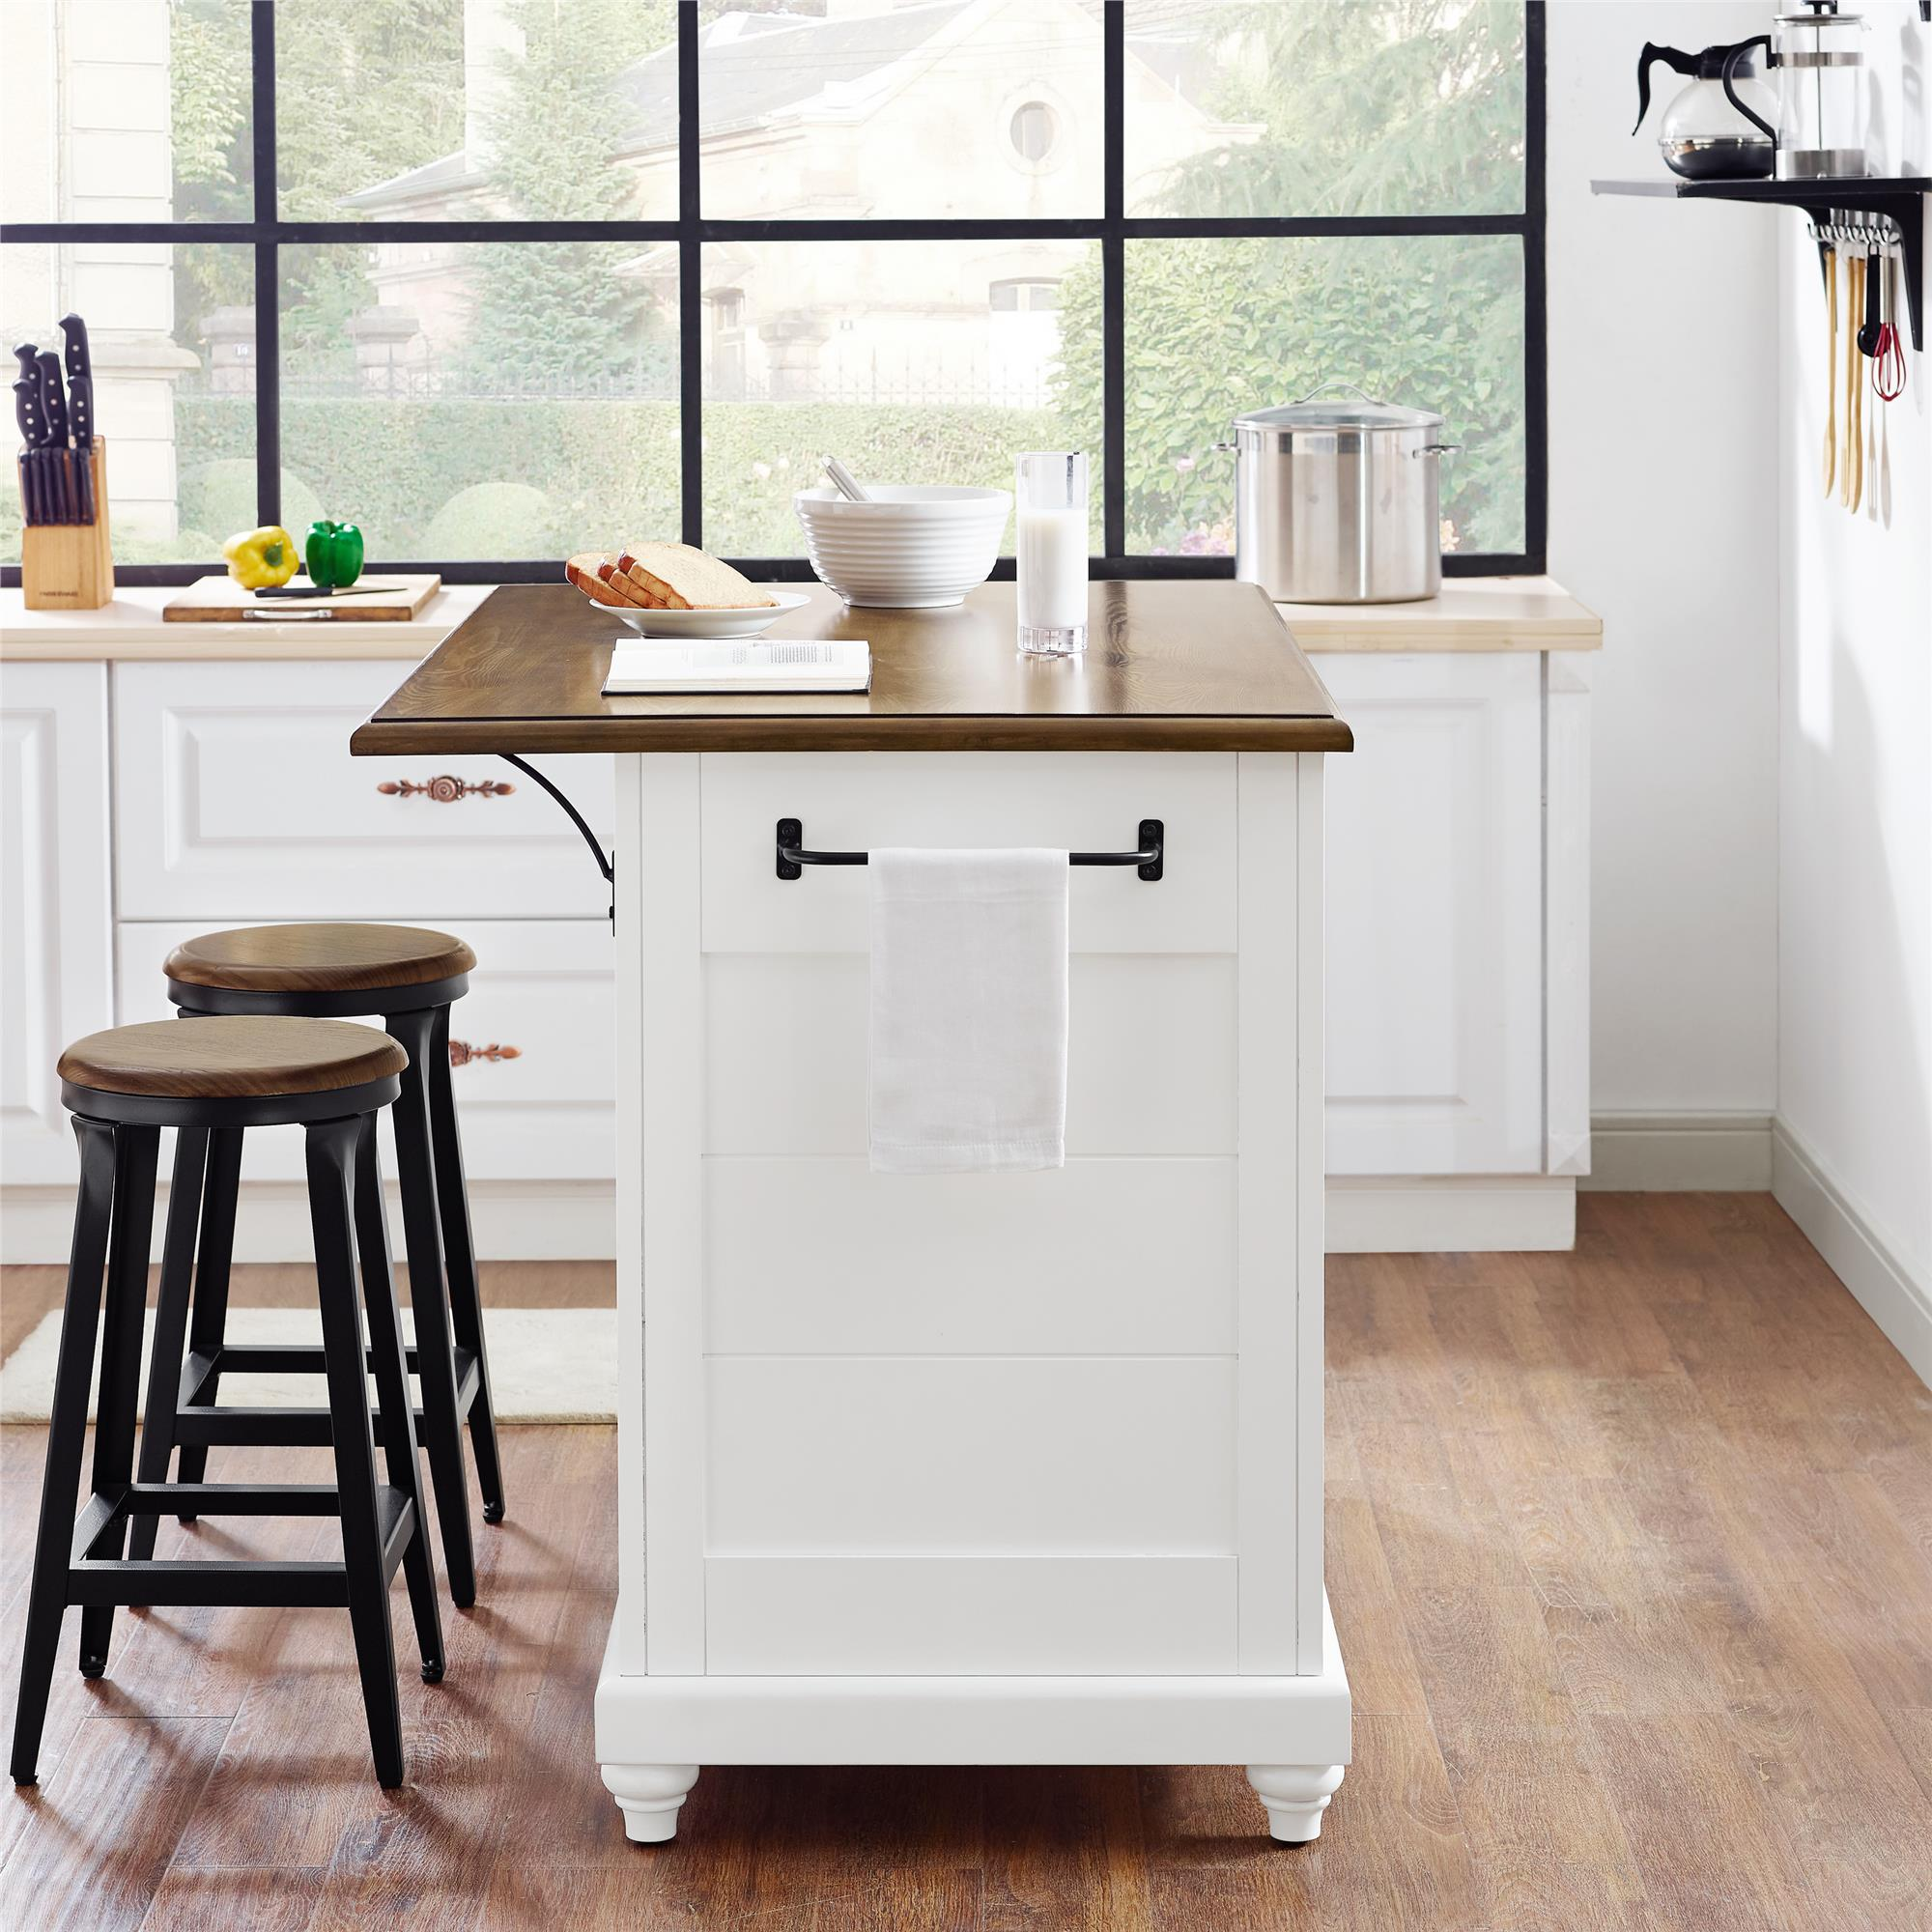 bathroom accent tables small house interior design source gray table dorel living kelsey kitchen island with brown home decorators catalog mango wood silver glass coffee set ott